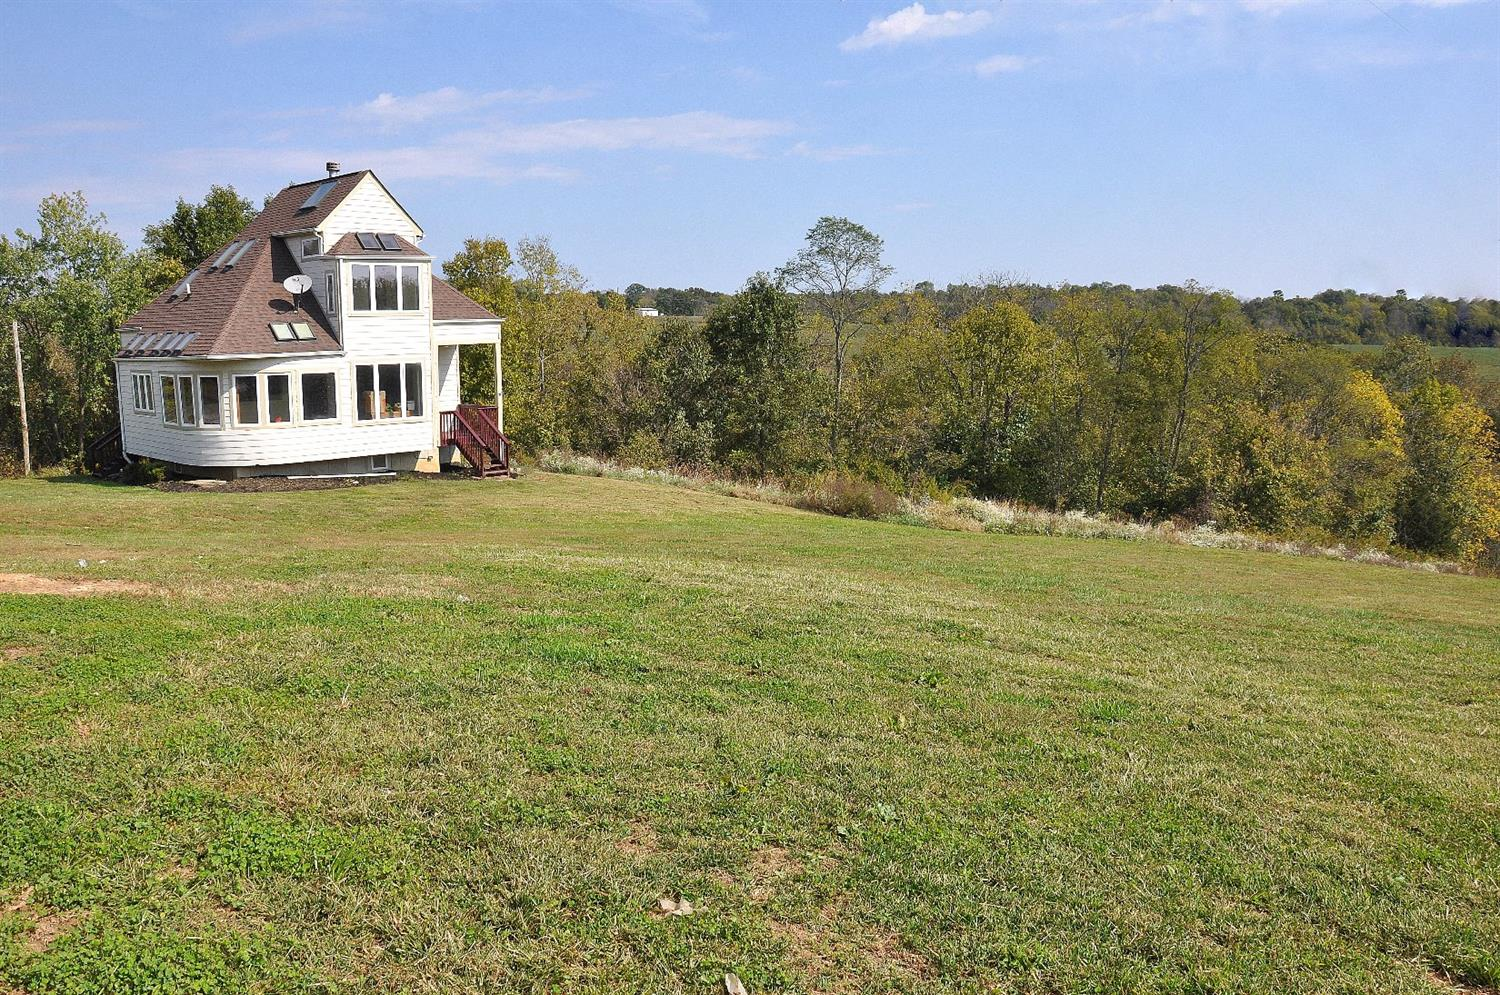 Chalet, Single Family Residence - Independence, KY (photo 1)